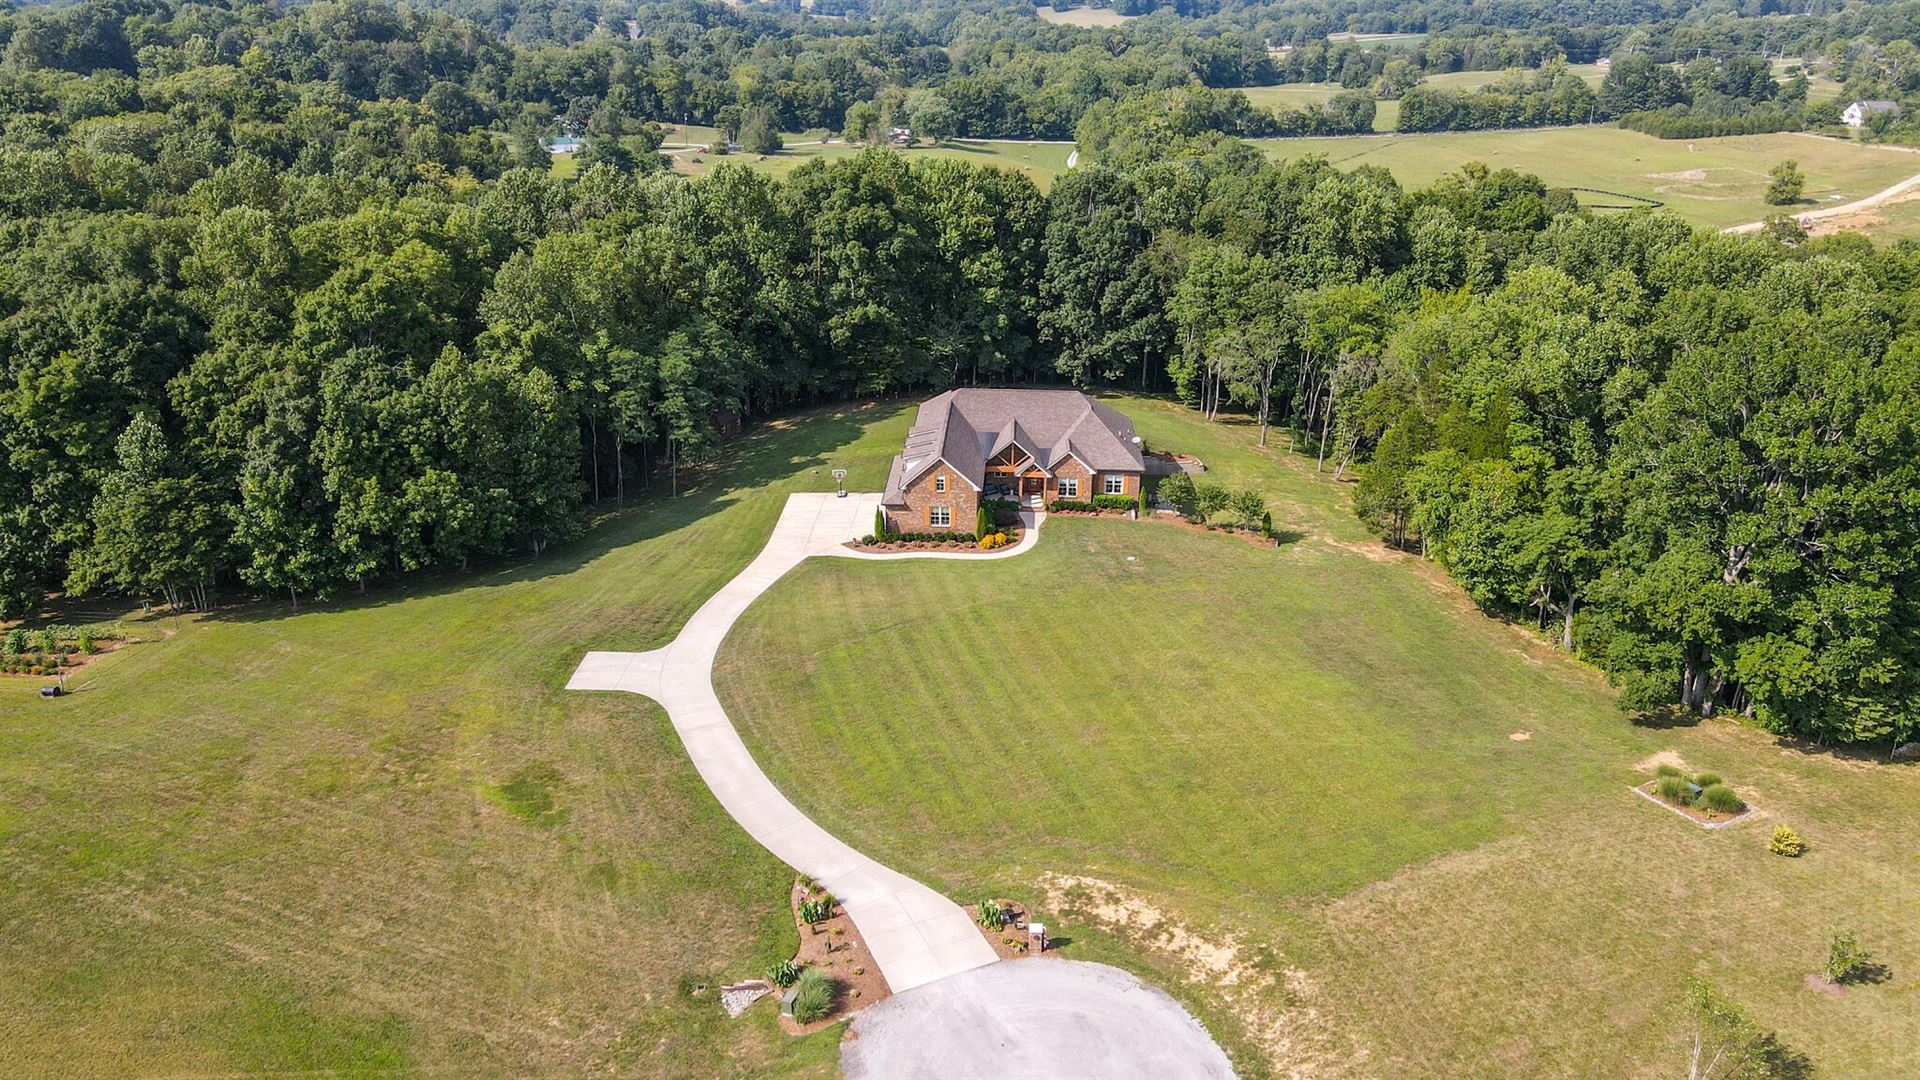 Photo of 3530 Prominence Dr, Spring Hill, TN 37174 (MLS # 2286385)